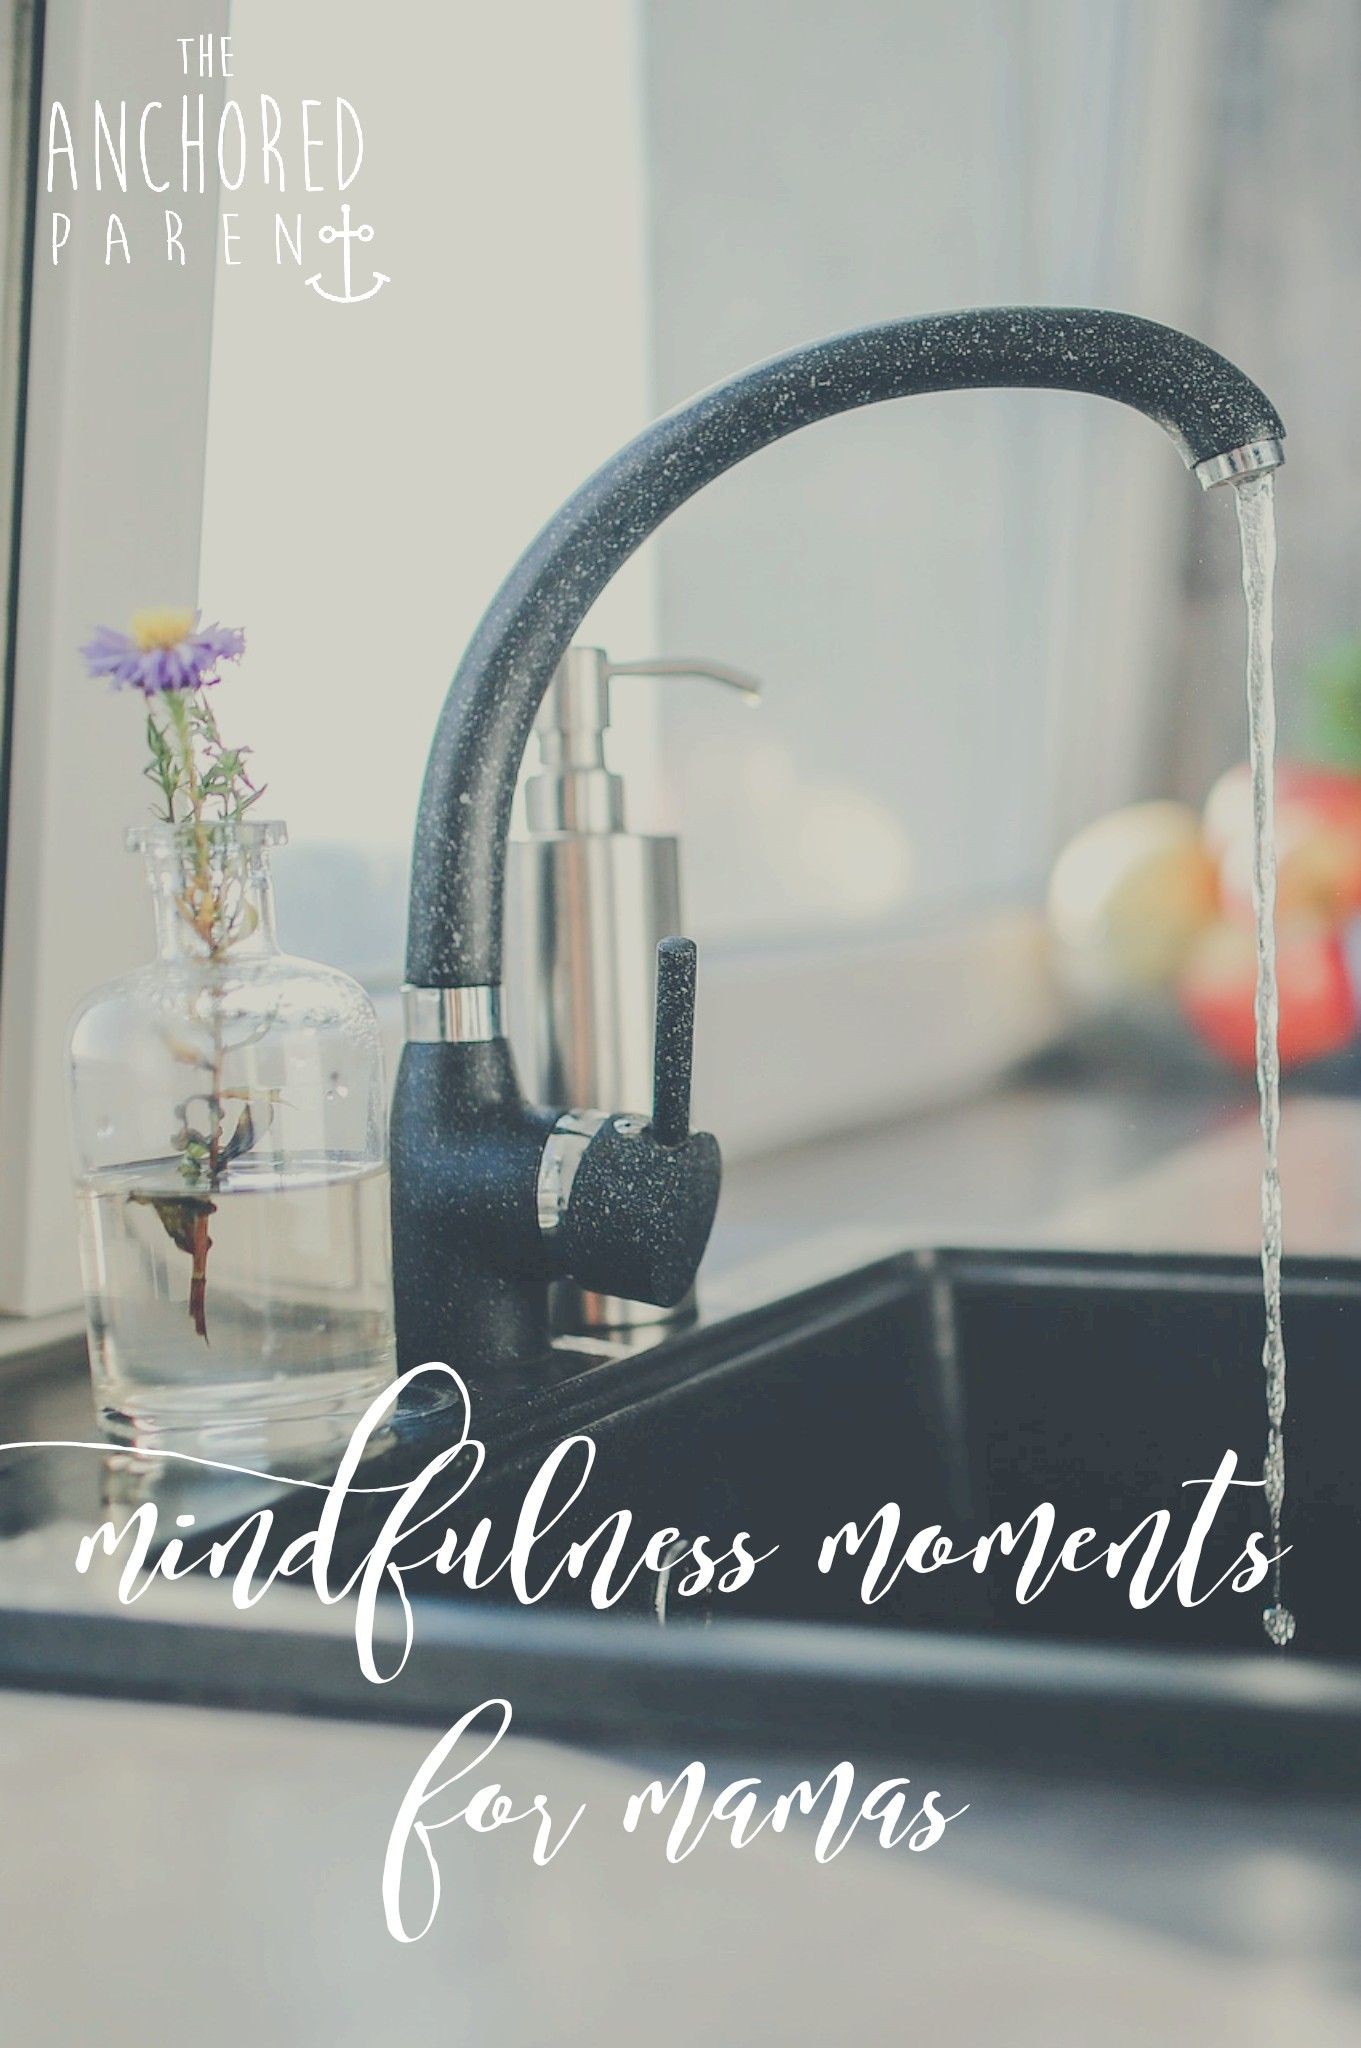 ⚓How many minutes will you spend standing at your sink